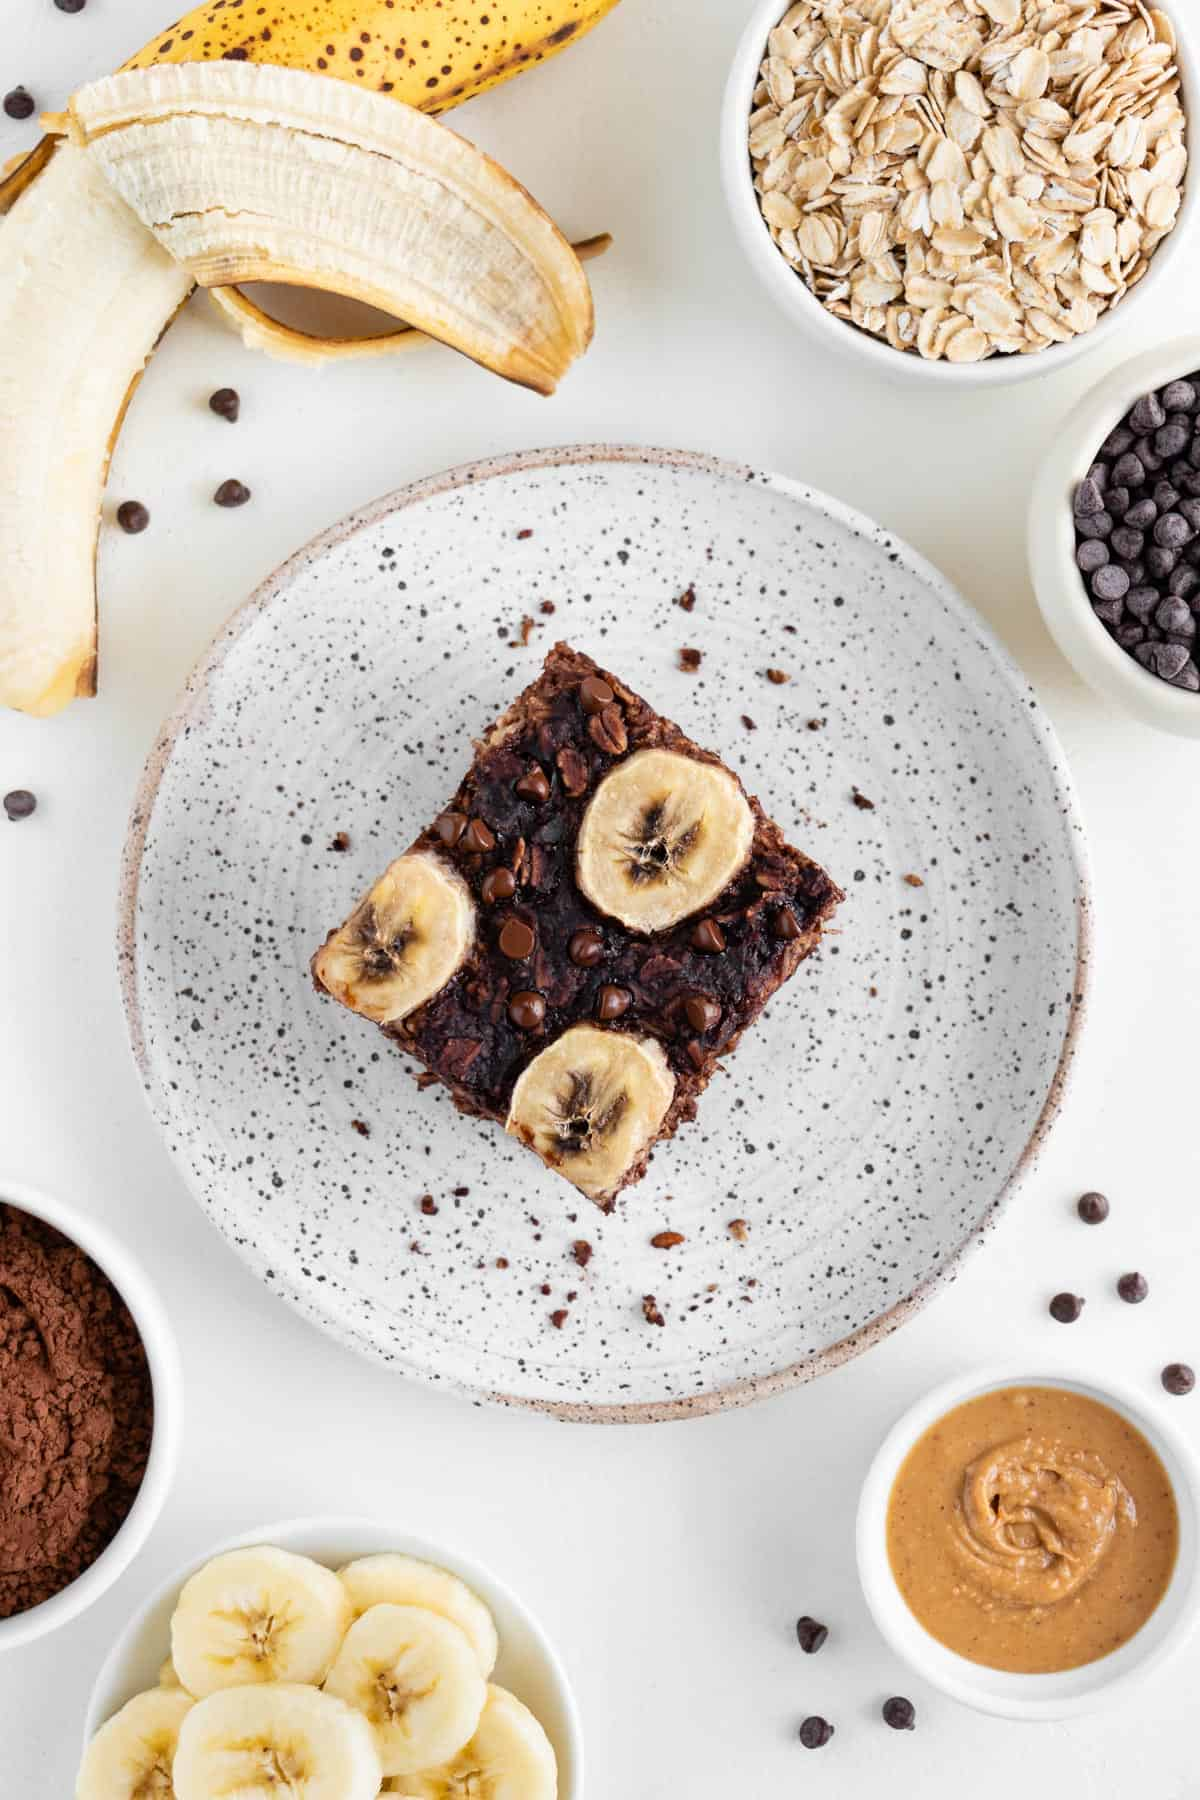 baked oatmeal with chocolate chips and bananas surrounded by rolled oats, cacao powder, and a wooden fork